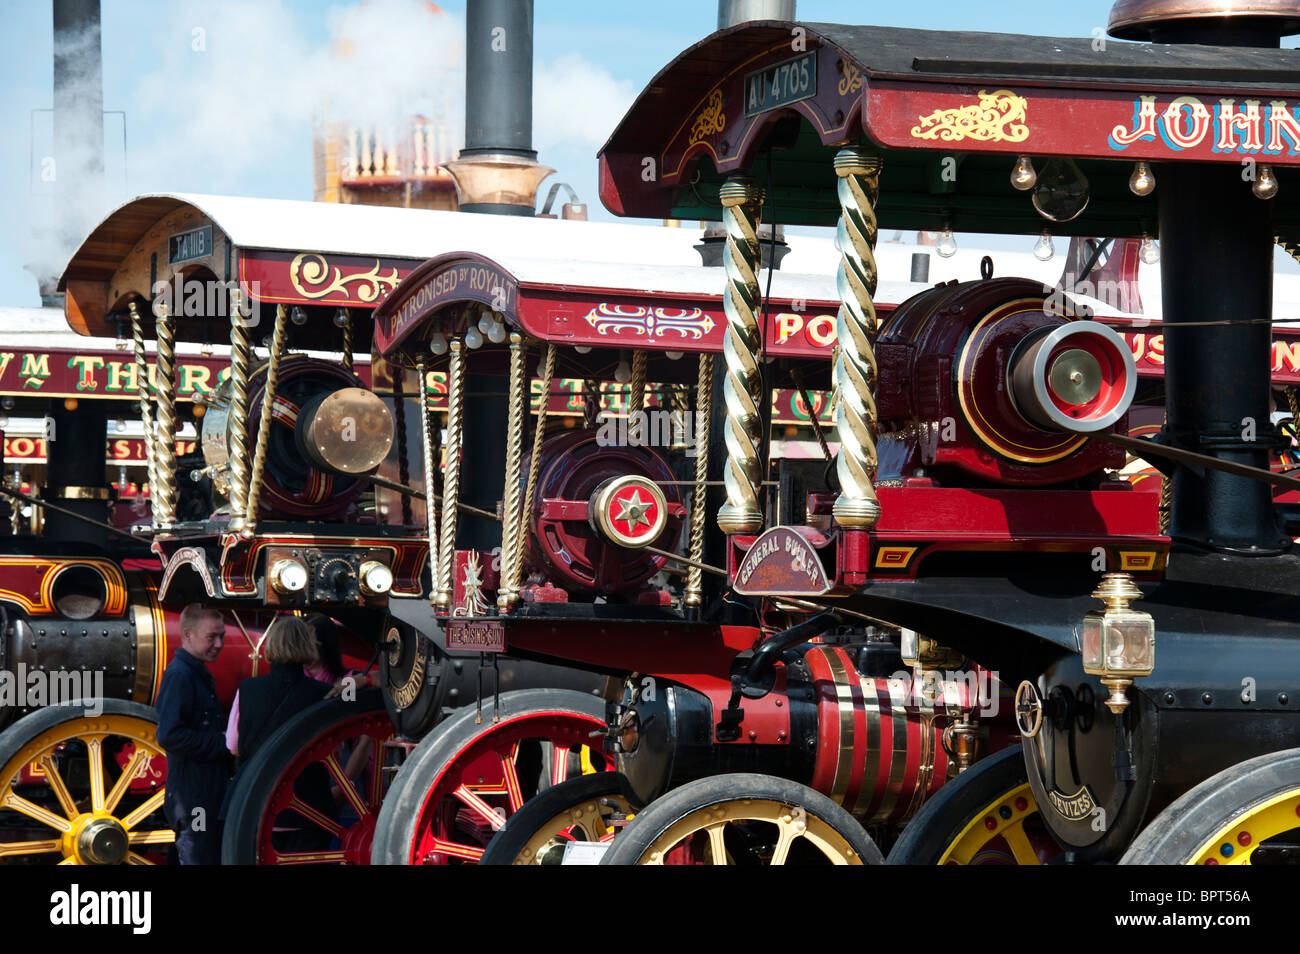 Showmans Traction Engines at the Great Dorset steam fair 2010, England - Stock Image